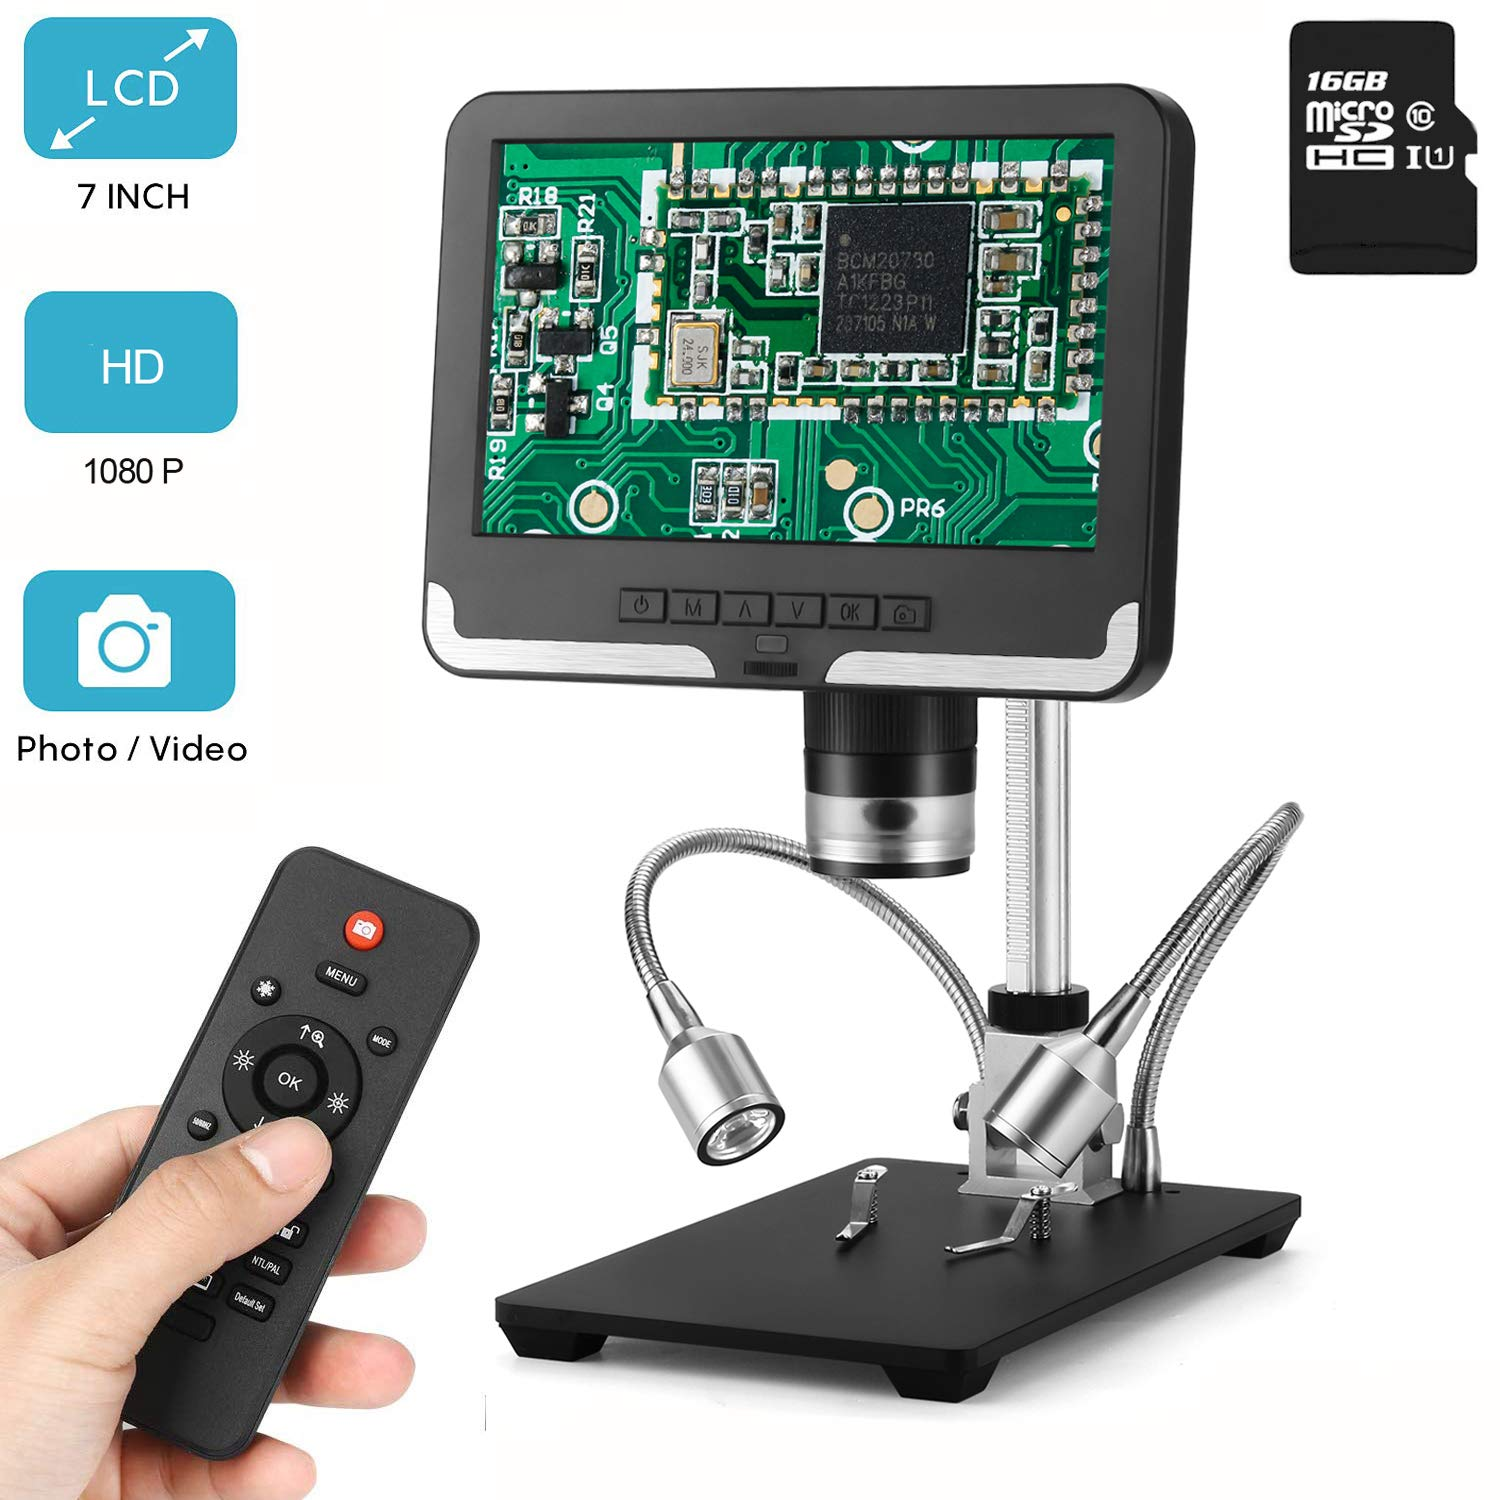 LCD Digital Microscope 7 in 1080P HD Screen 200X Magnification Zoom Camera Video Recorder with 16G SD Card, Angle Adjustable Microscope, 2 Fill Lights, with Remote Control